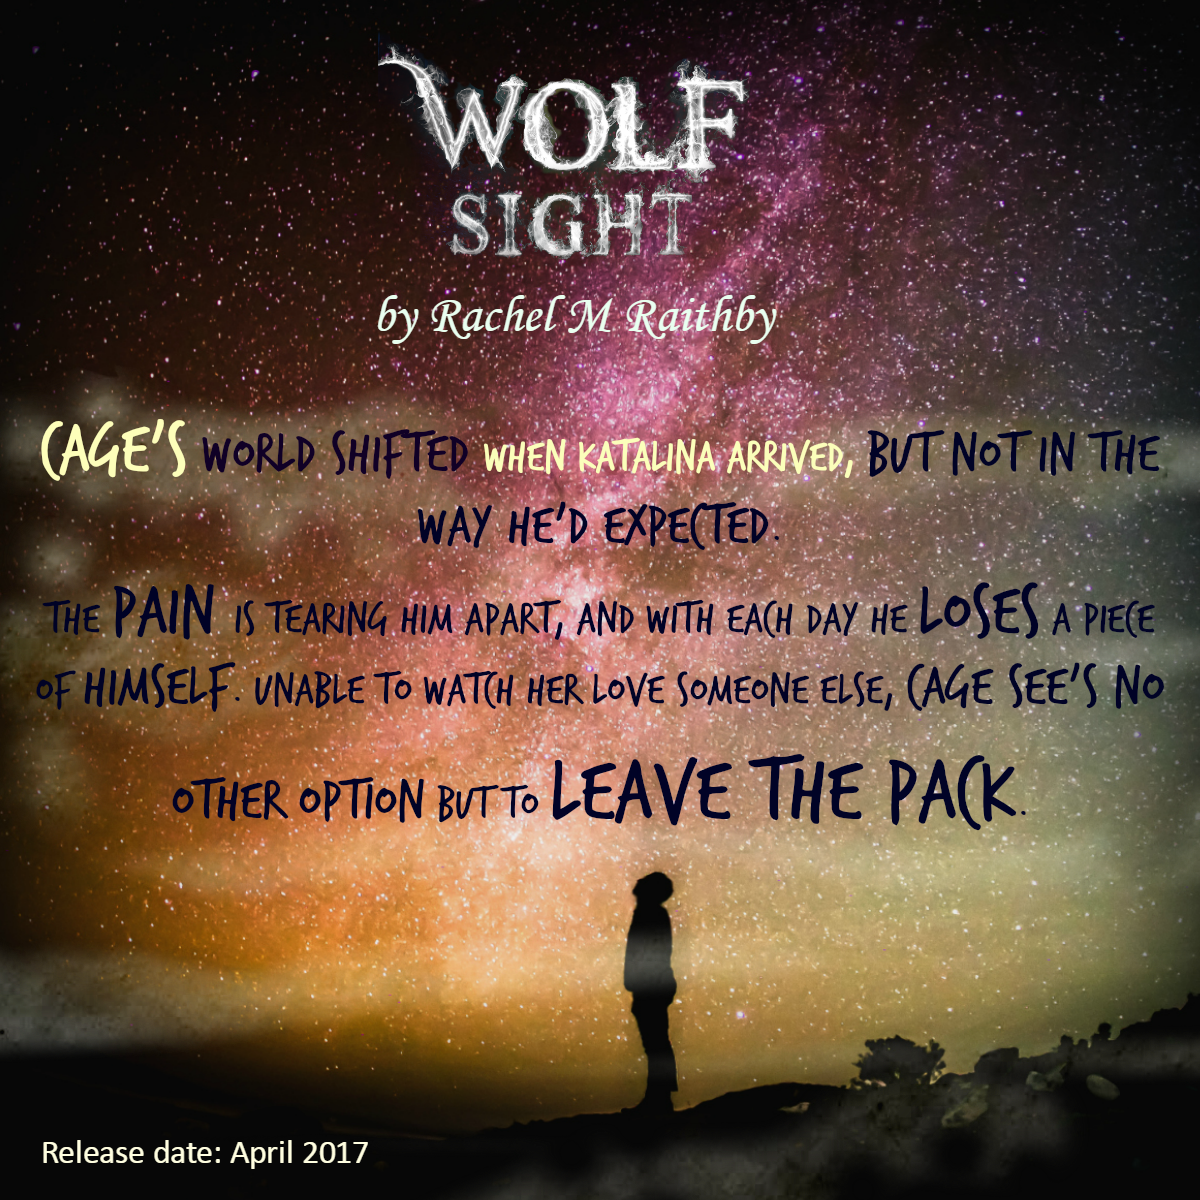 wolf-sight-teaser-1